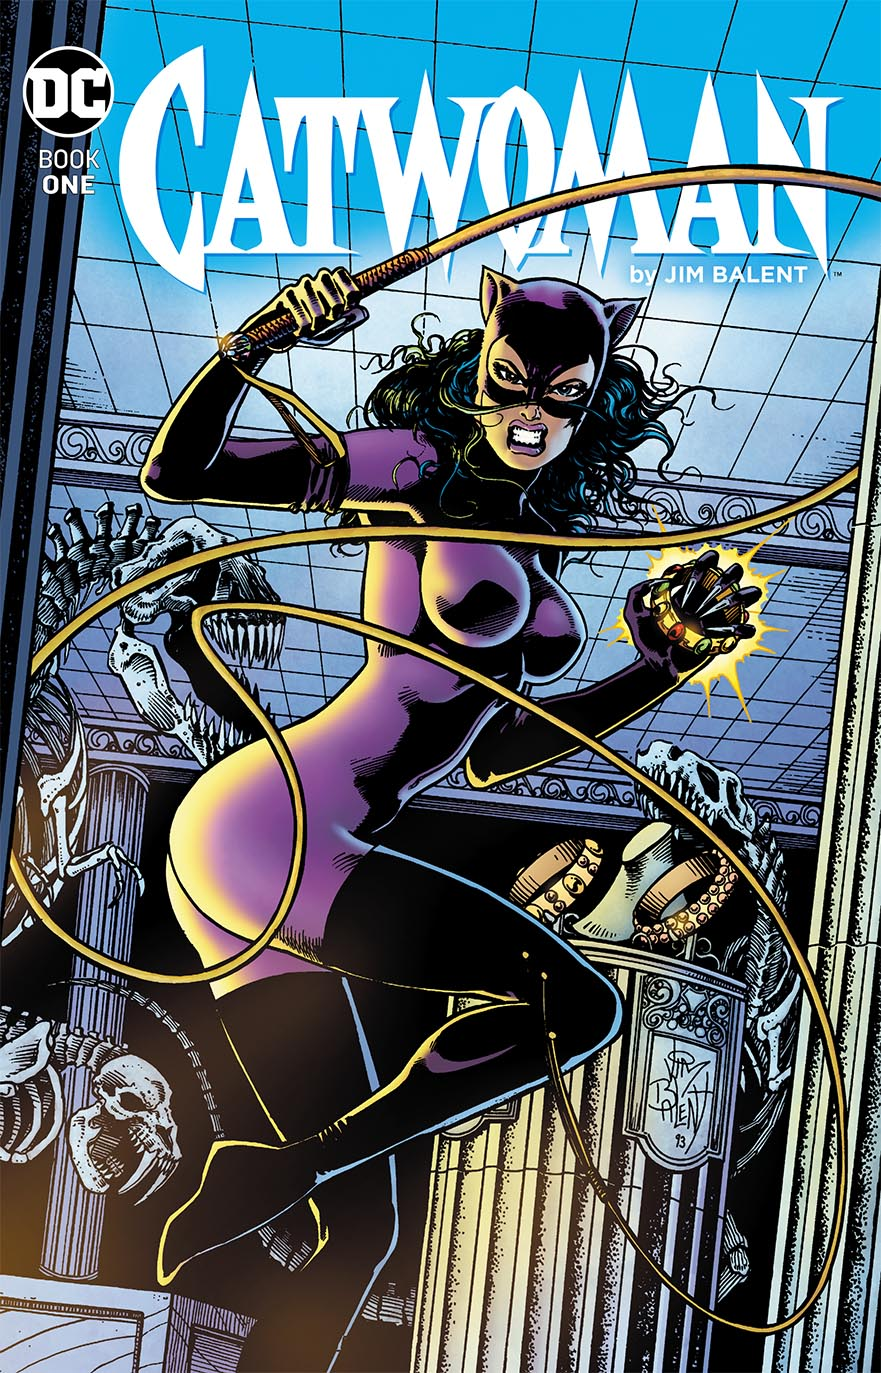 Catwoman By Jim Balent Book 1 TP